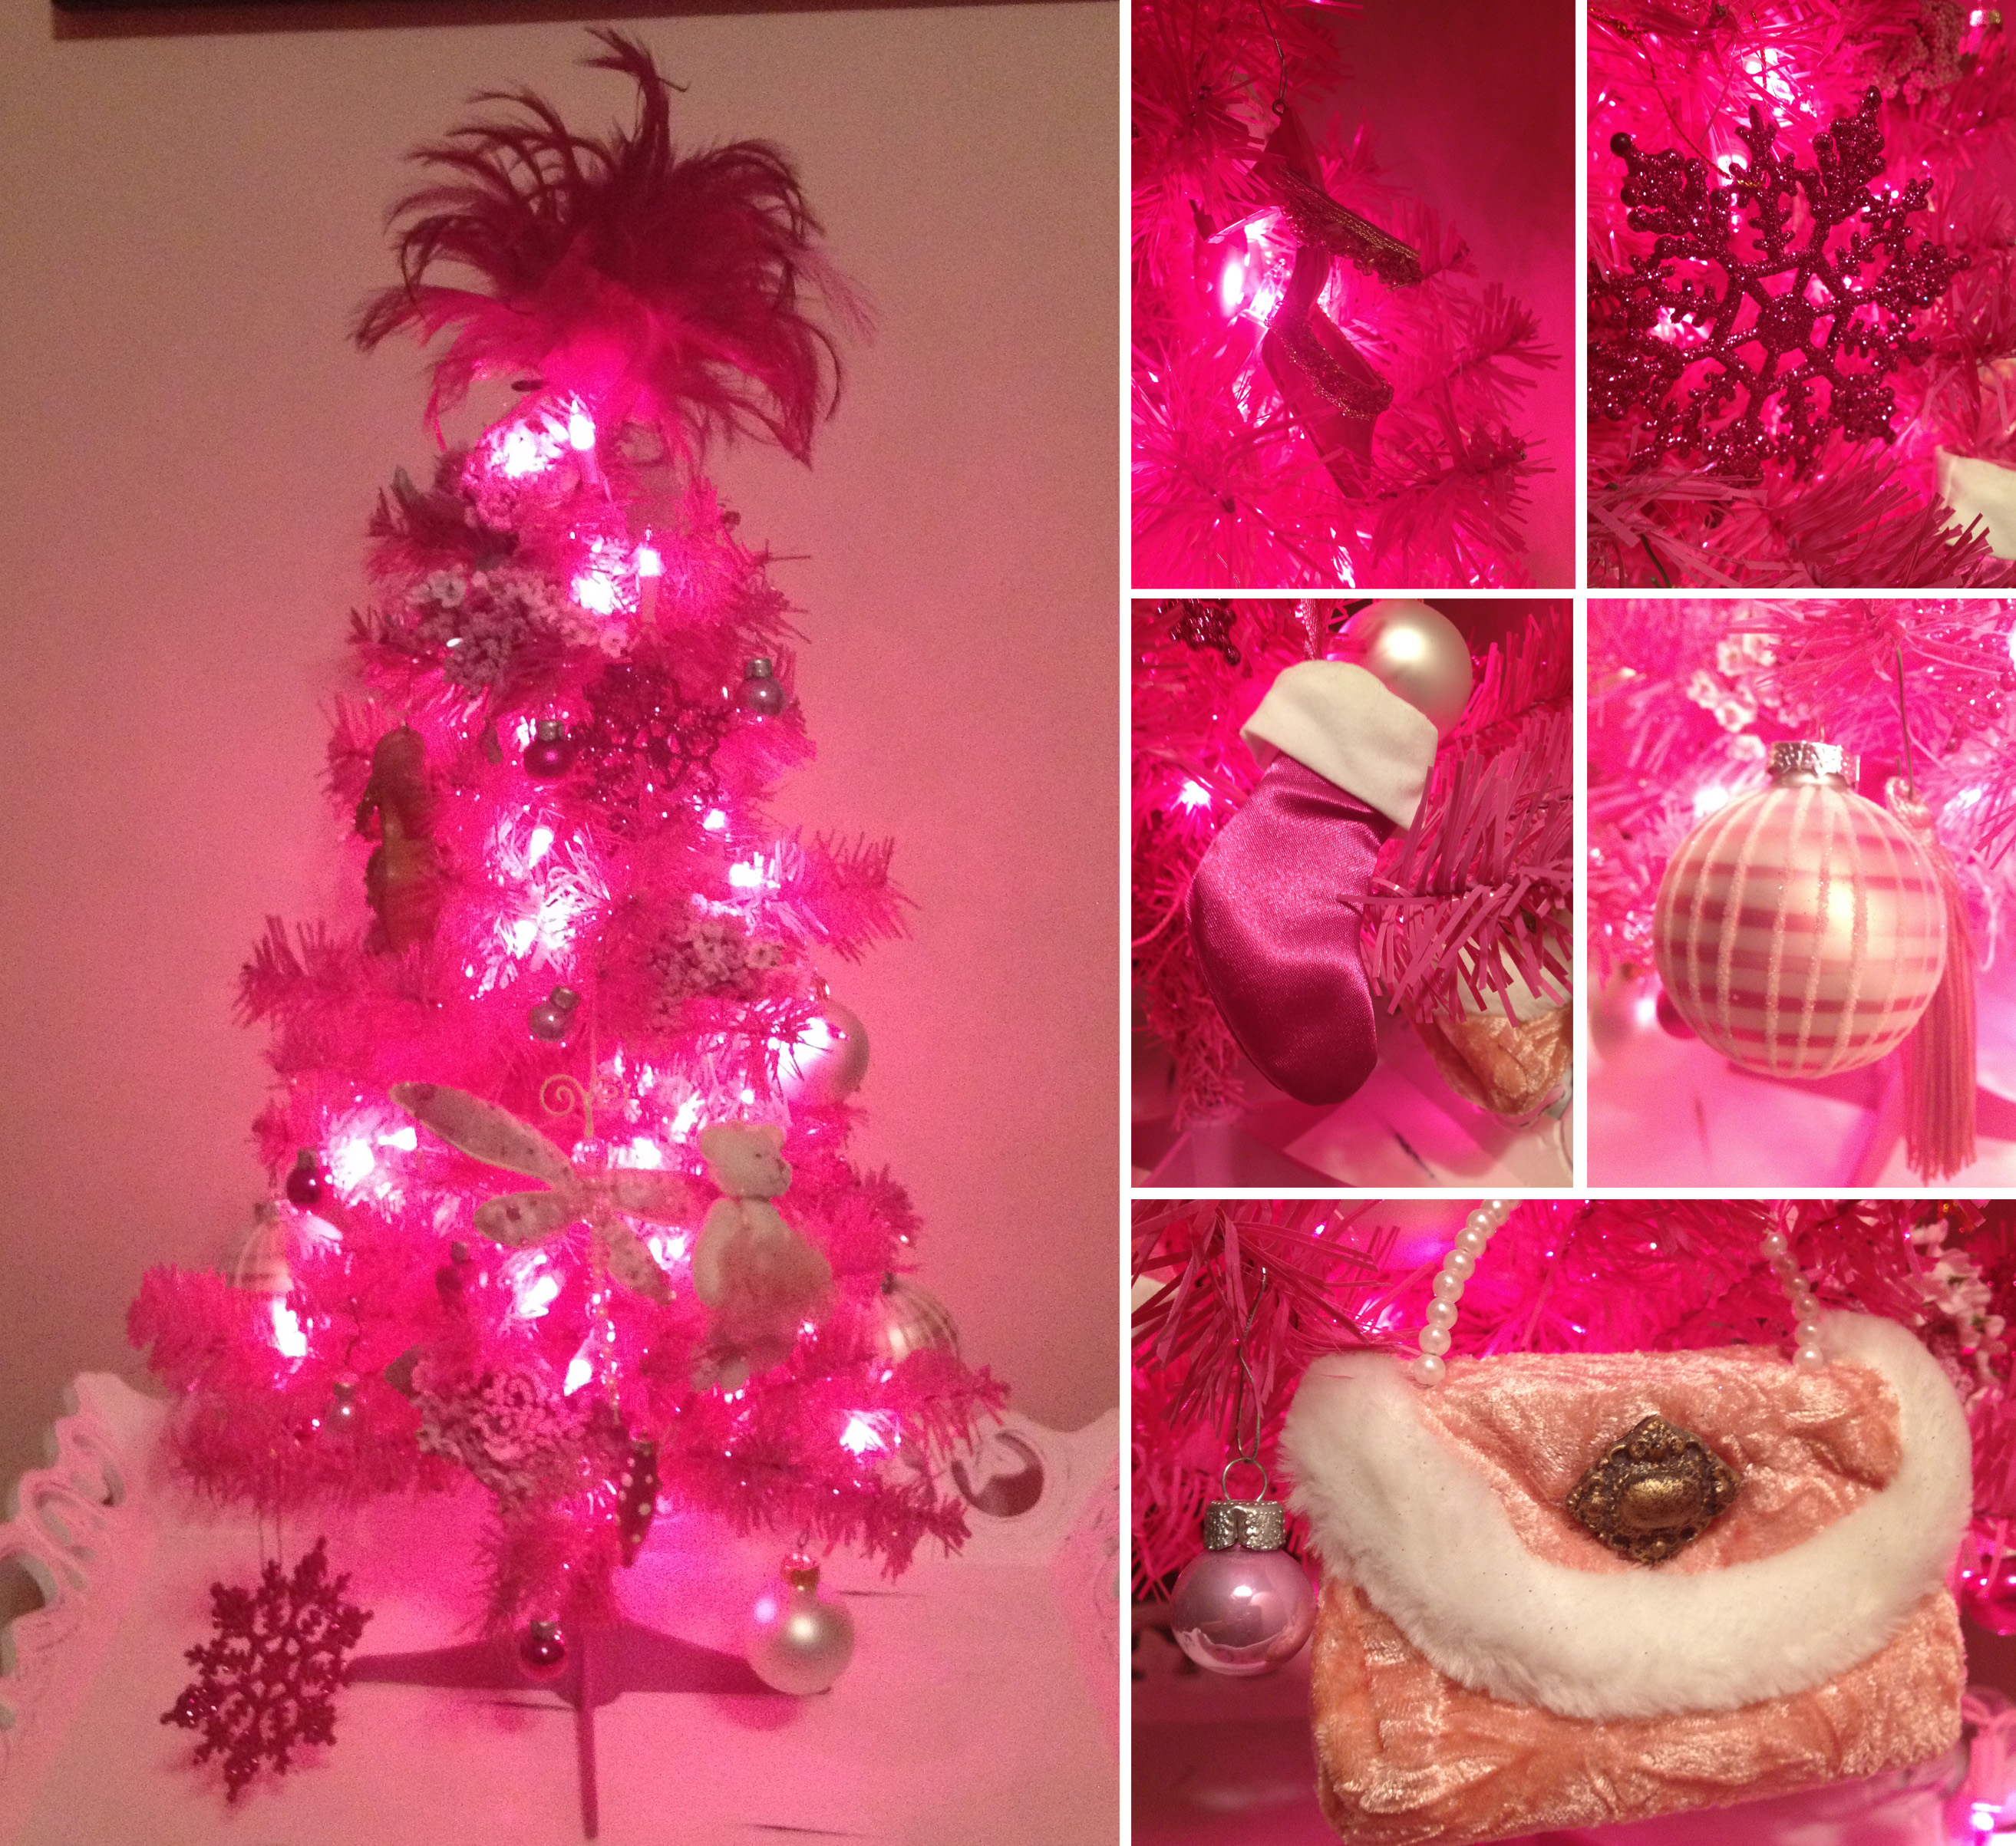 I love my pink tree, it stands about 2 feet tall and has pink lights on it  as well.